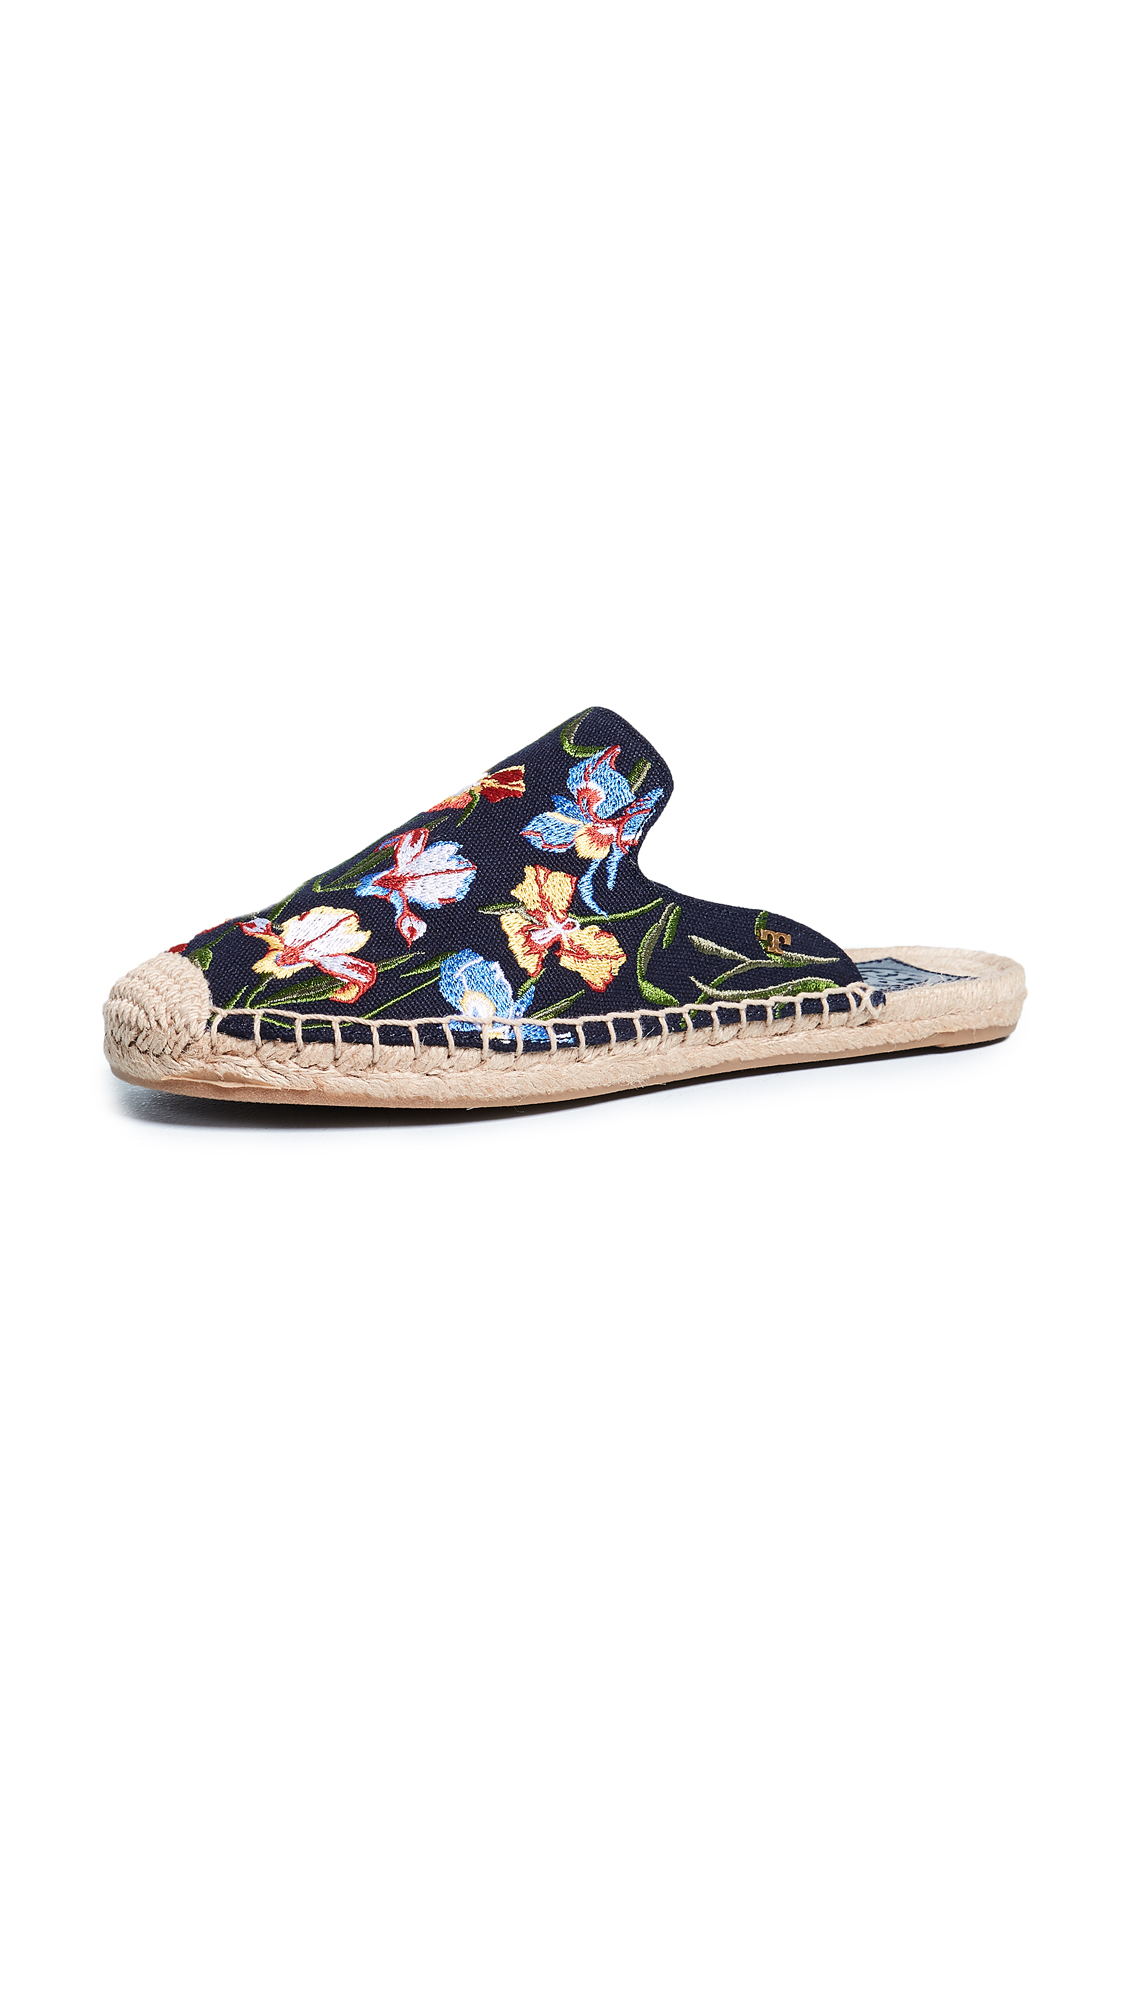 Tory Burch Max Embroidered Espadrille Slides - Perfect Navy/Painted Iris